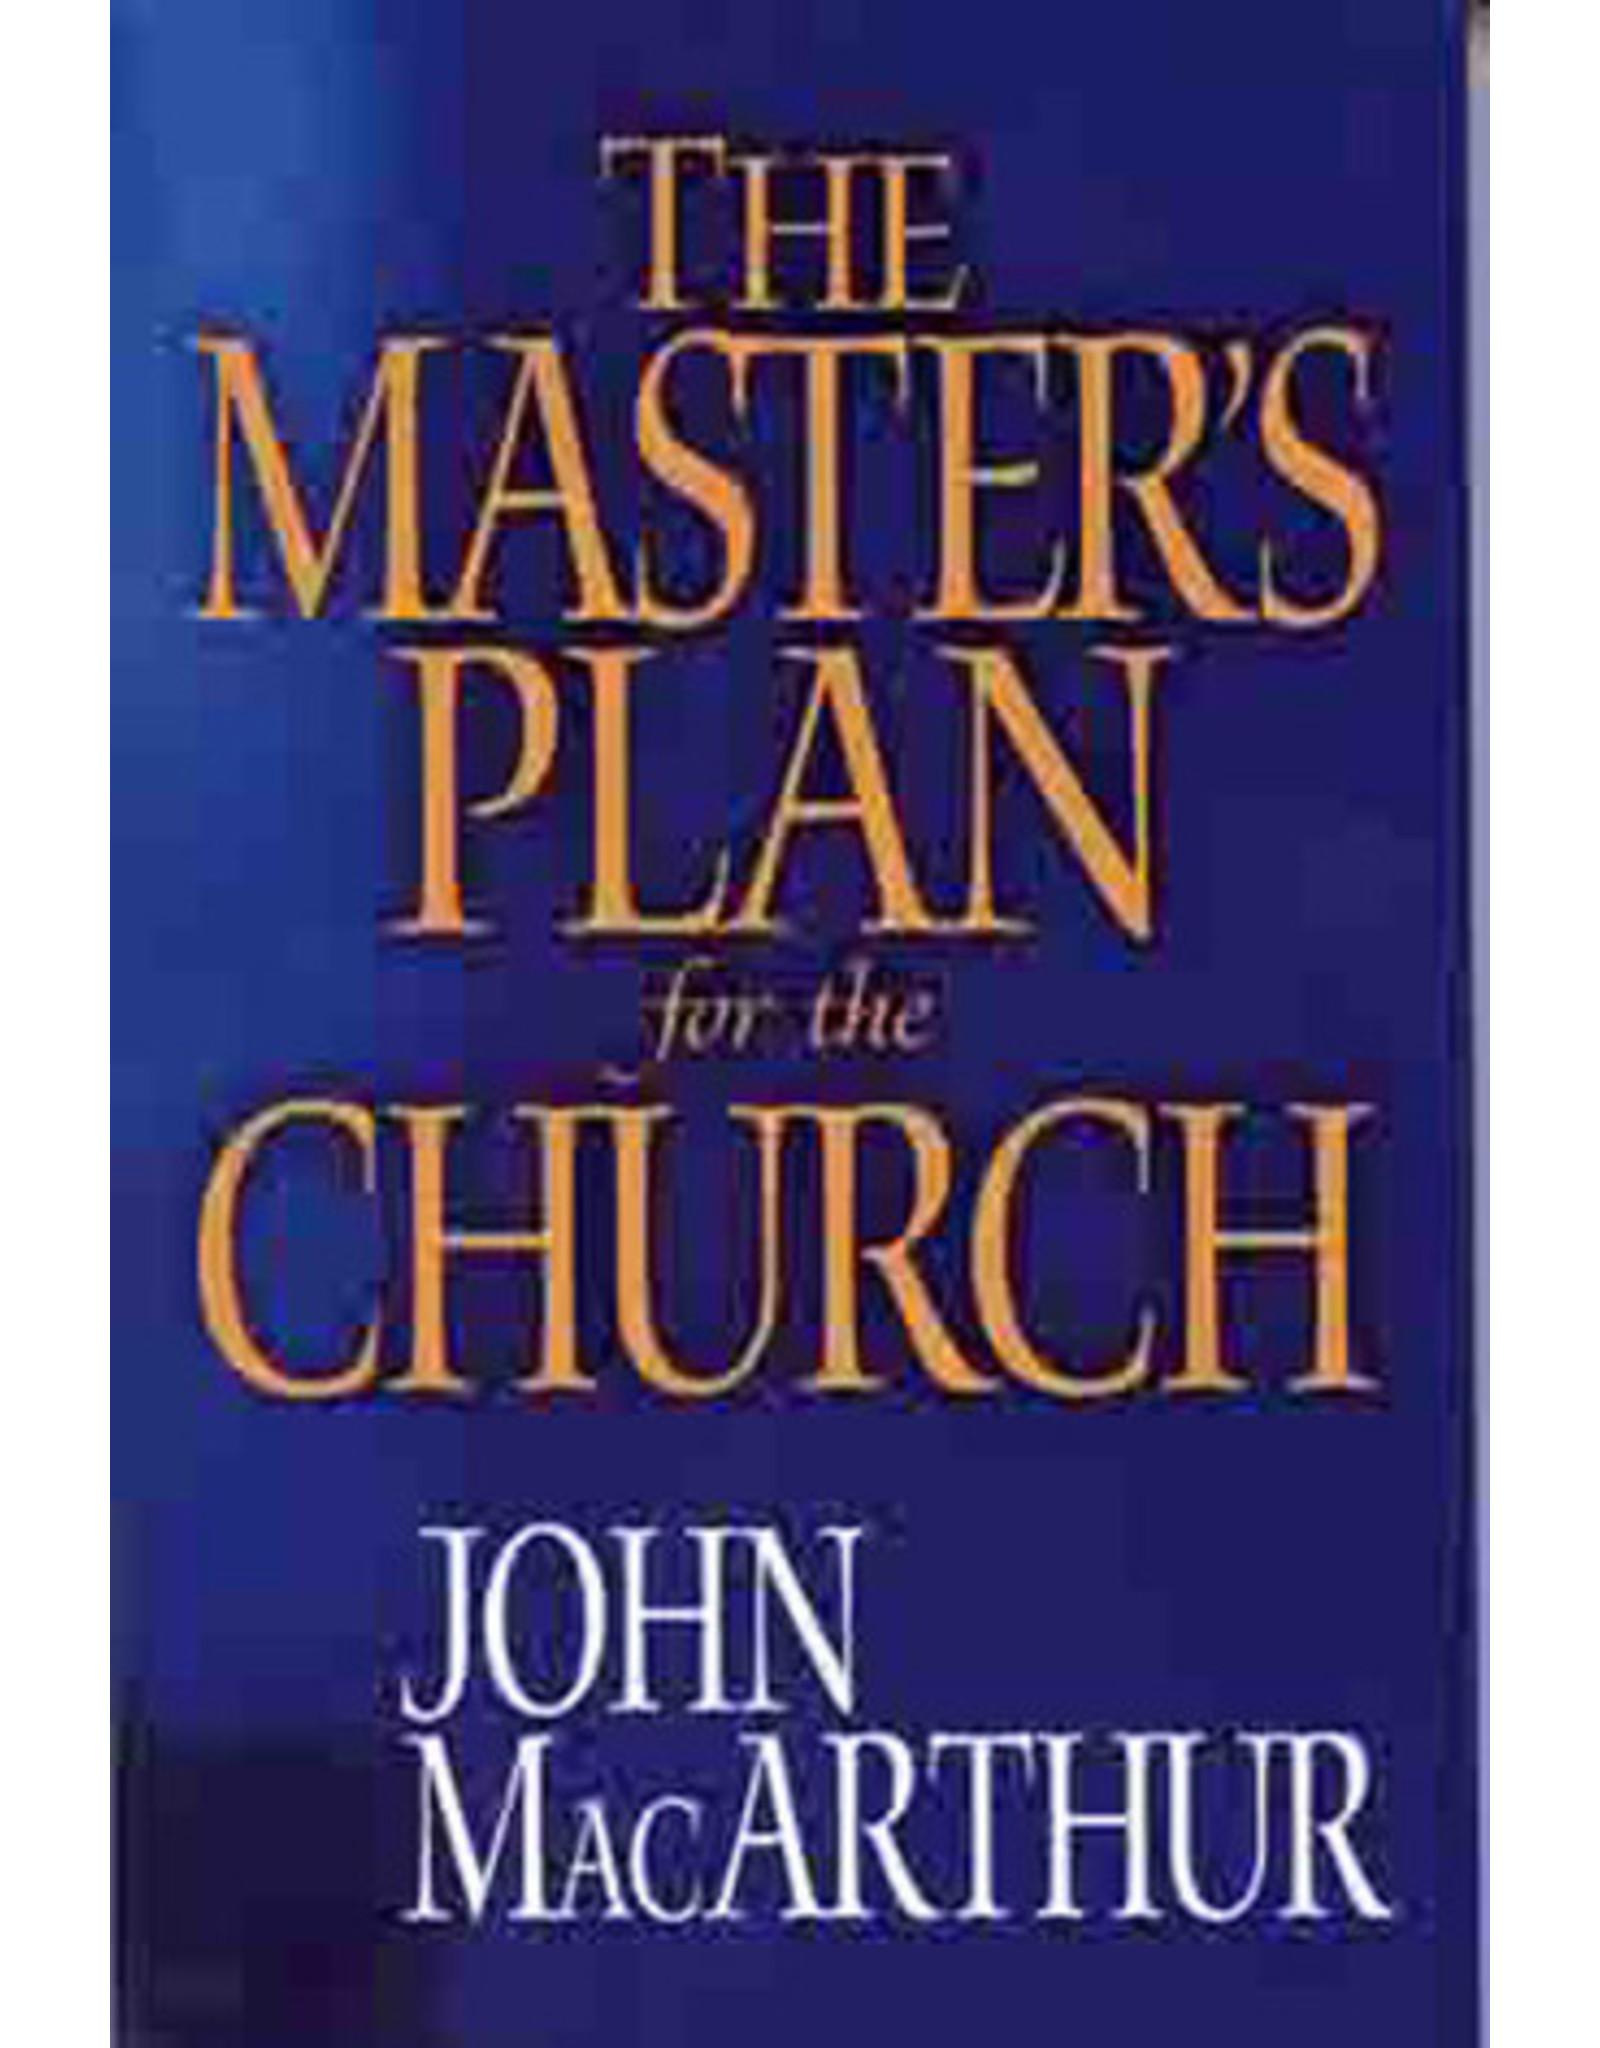 MacArthur Masters Plan for the Church